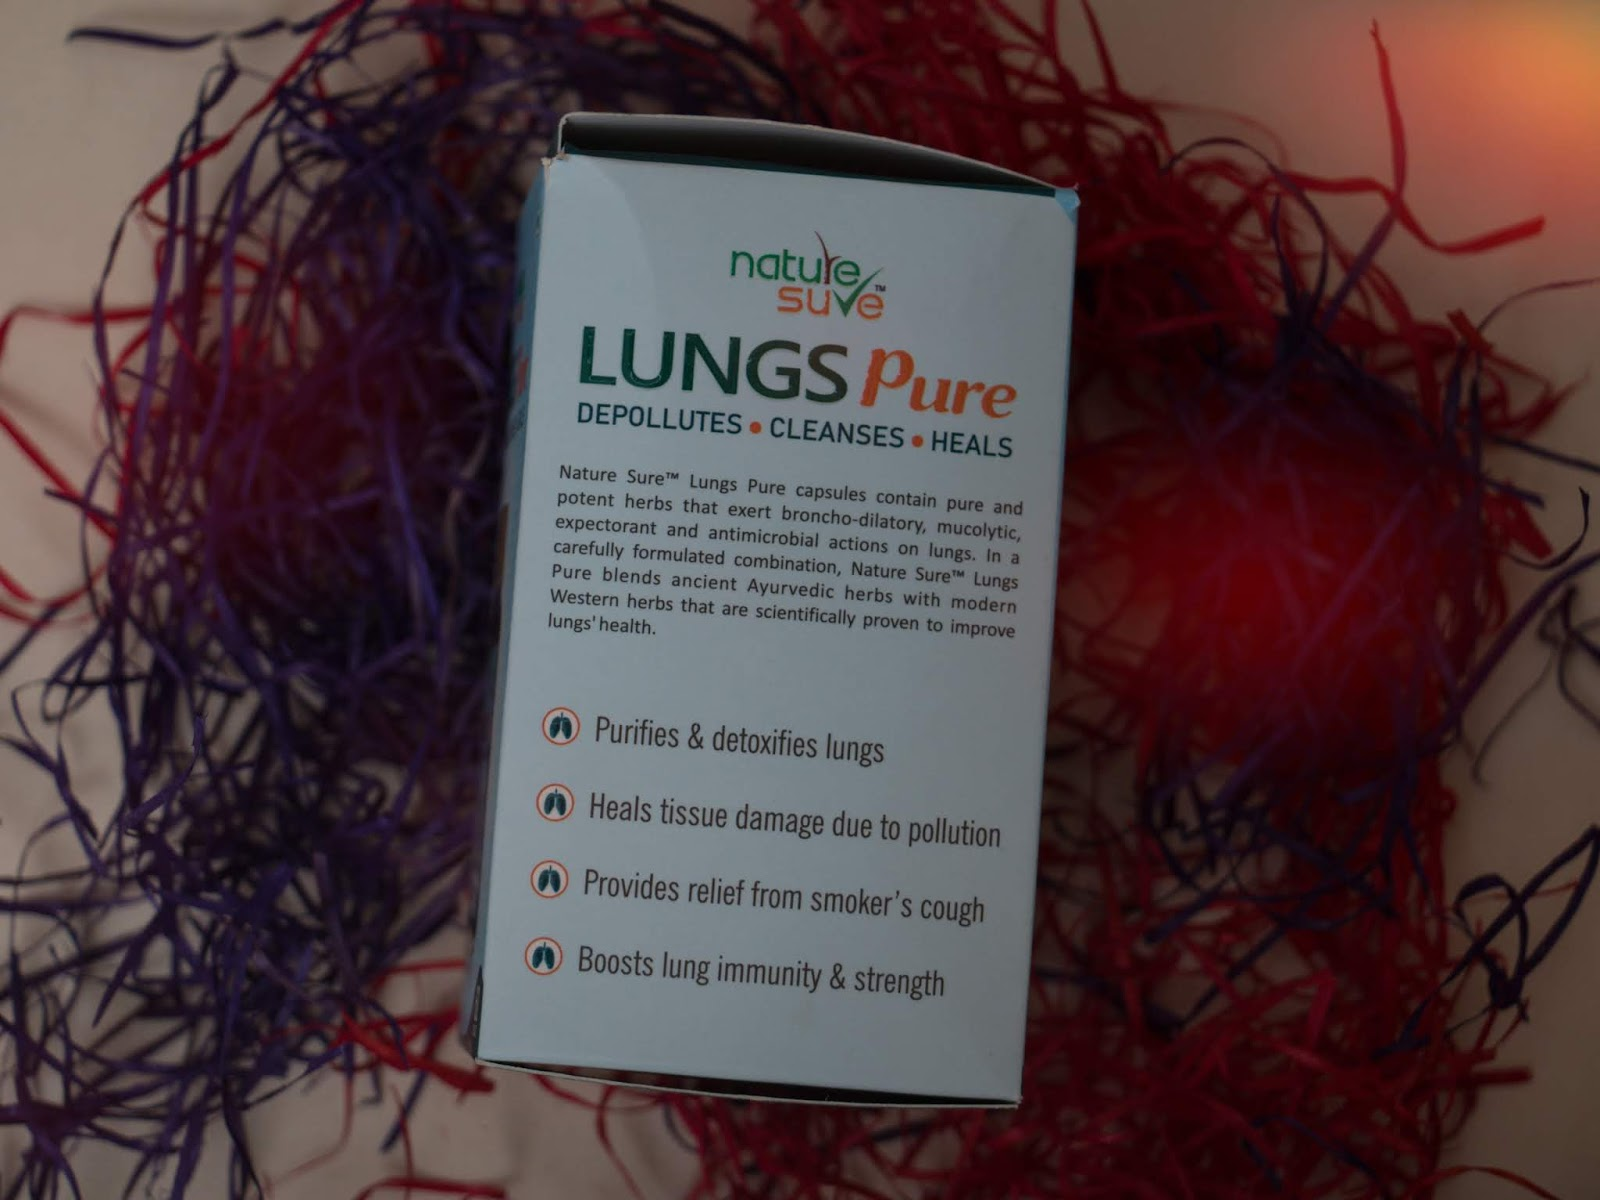 Nature Sure Lungs Capsules Features